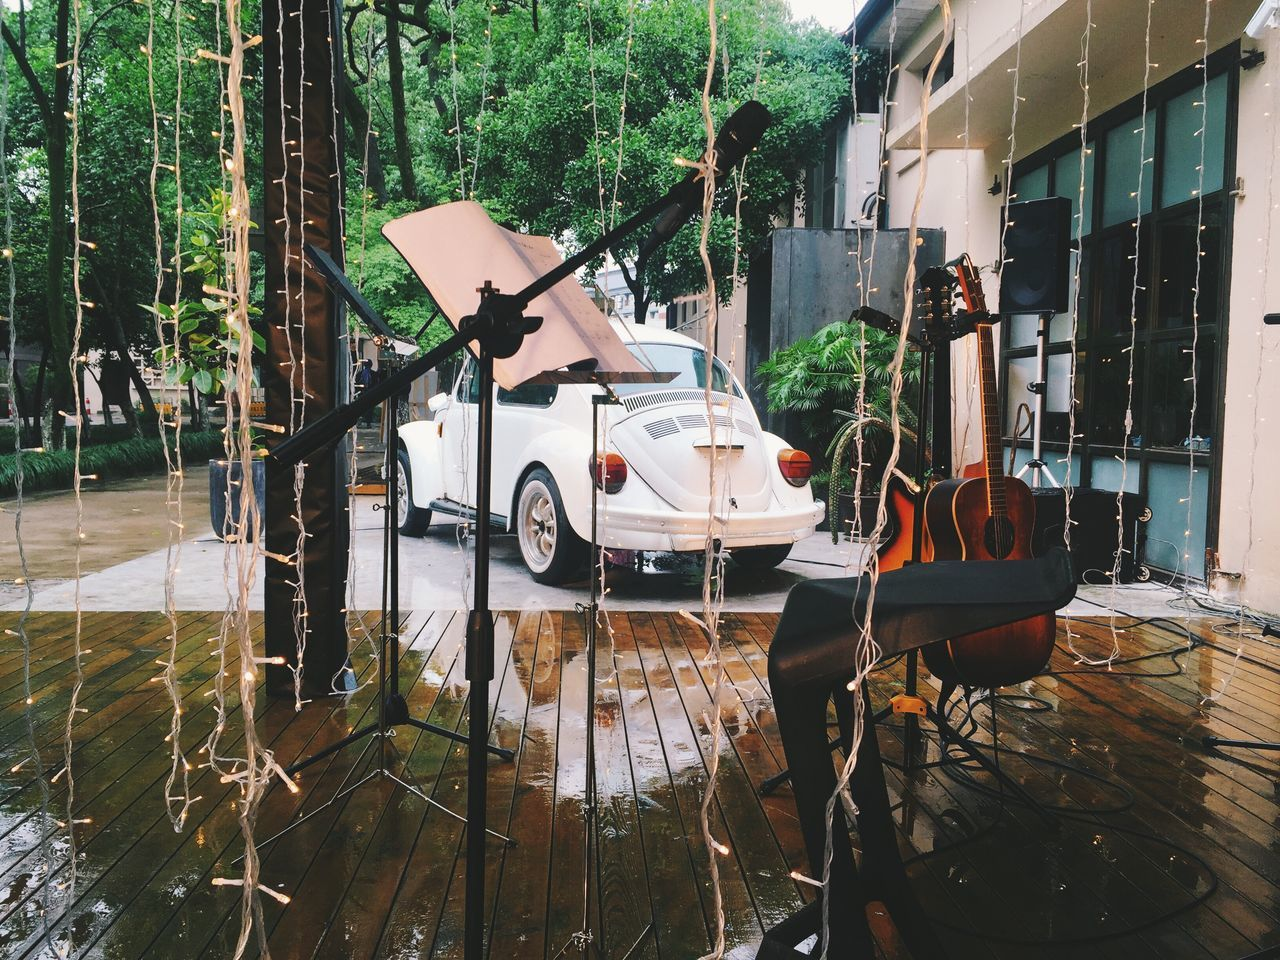 Weddings Around The World Wedding Photography Wedding Stage Singing In The Rain Guitar Live Music Music Is My Life Vintage Cars Scene Showcase May Summer